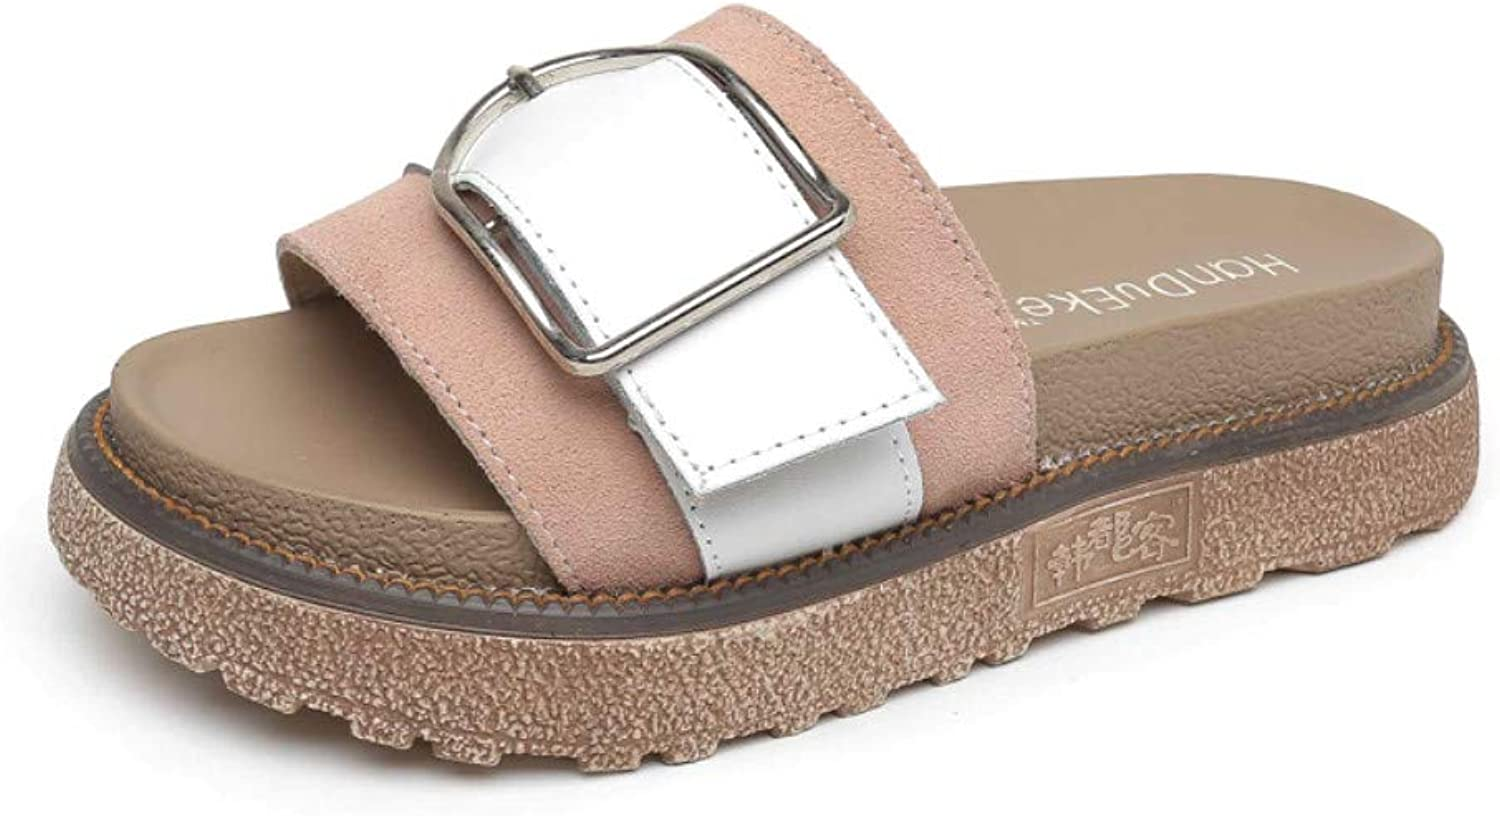 Women's Slippers, Microfiber Summer Fashion Sandal, Creepers Gladiator Platform with Matte Metal Buckle